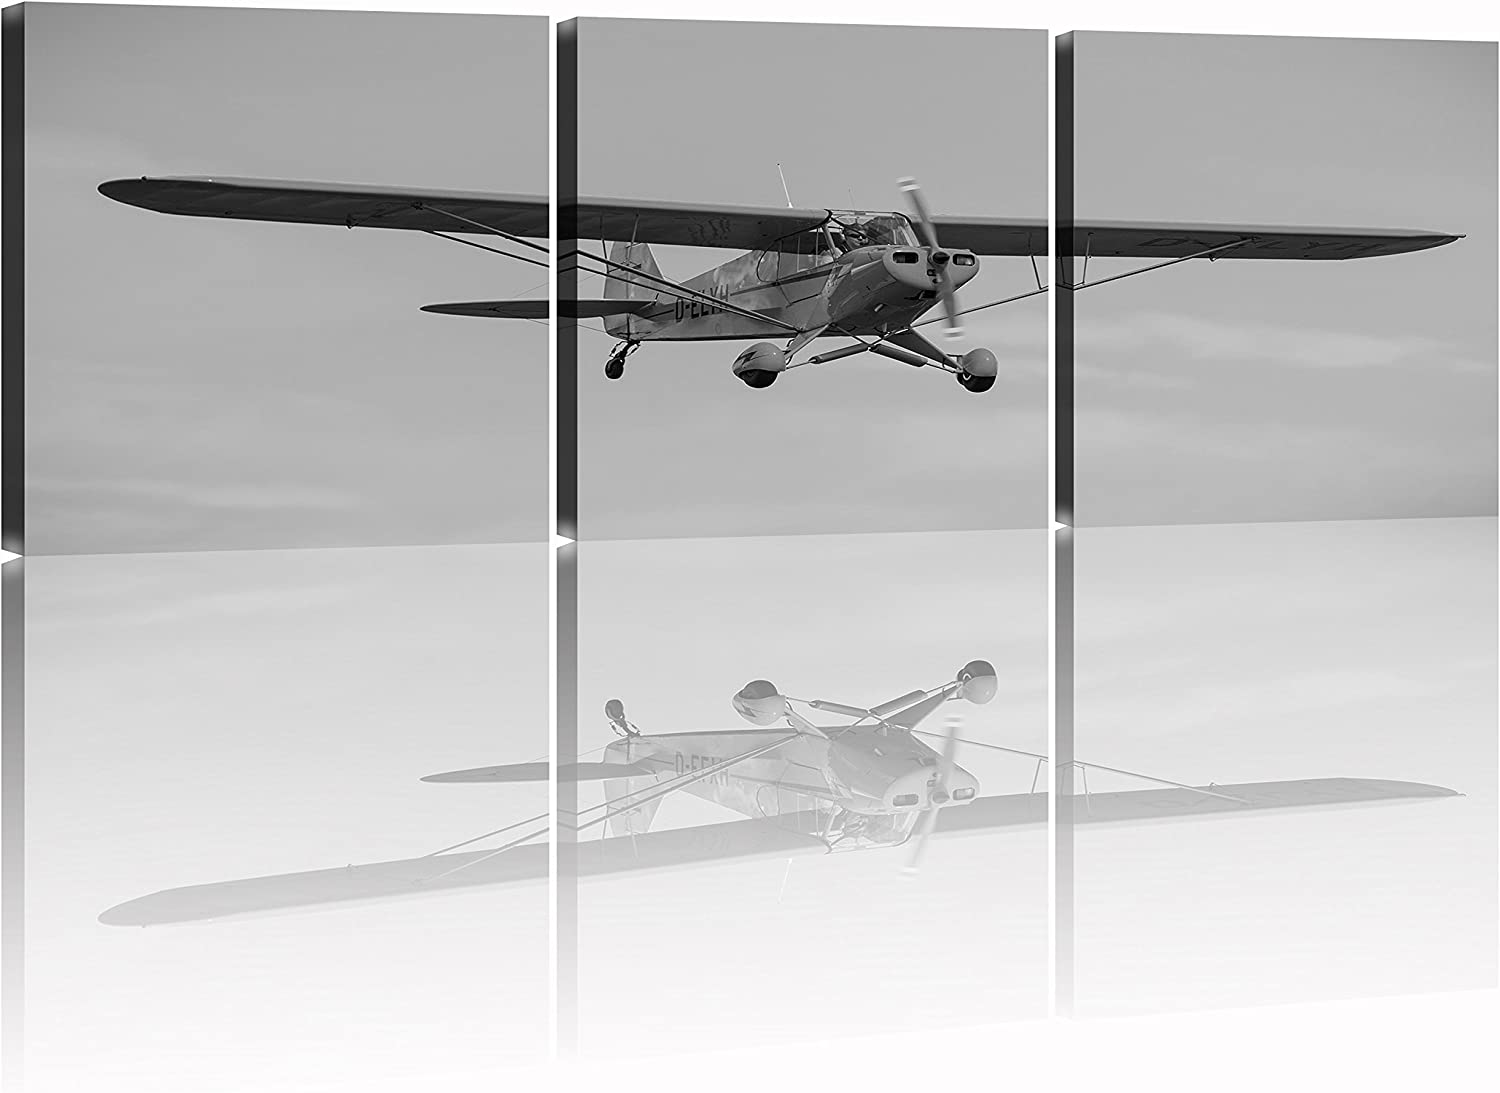 NAN Wind Black and White Vintage Airplane Artwork Giclee Canvas Prints Airplane Pictures Paintings on Canvas Wall Art Ready to Hang for Living Room Bedroom Home Decorations